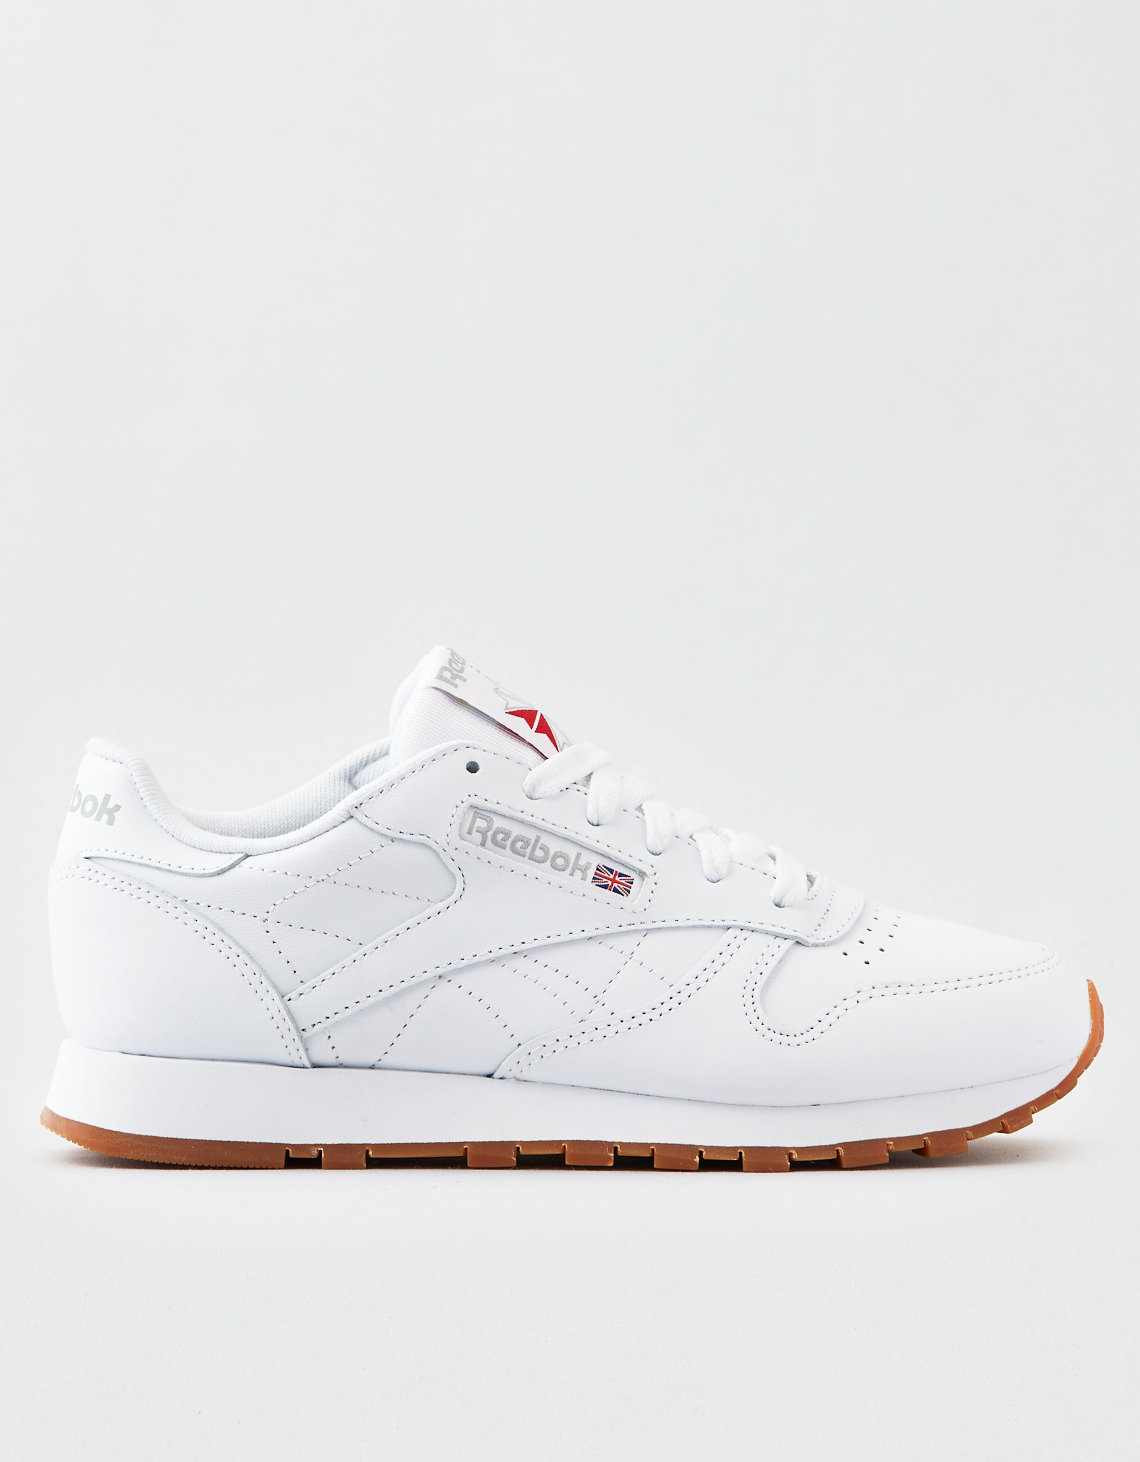 b1535187dde Reebok Classic Leather Sneakers. Placeholder image. Product Image